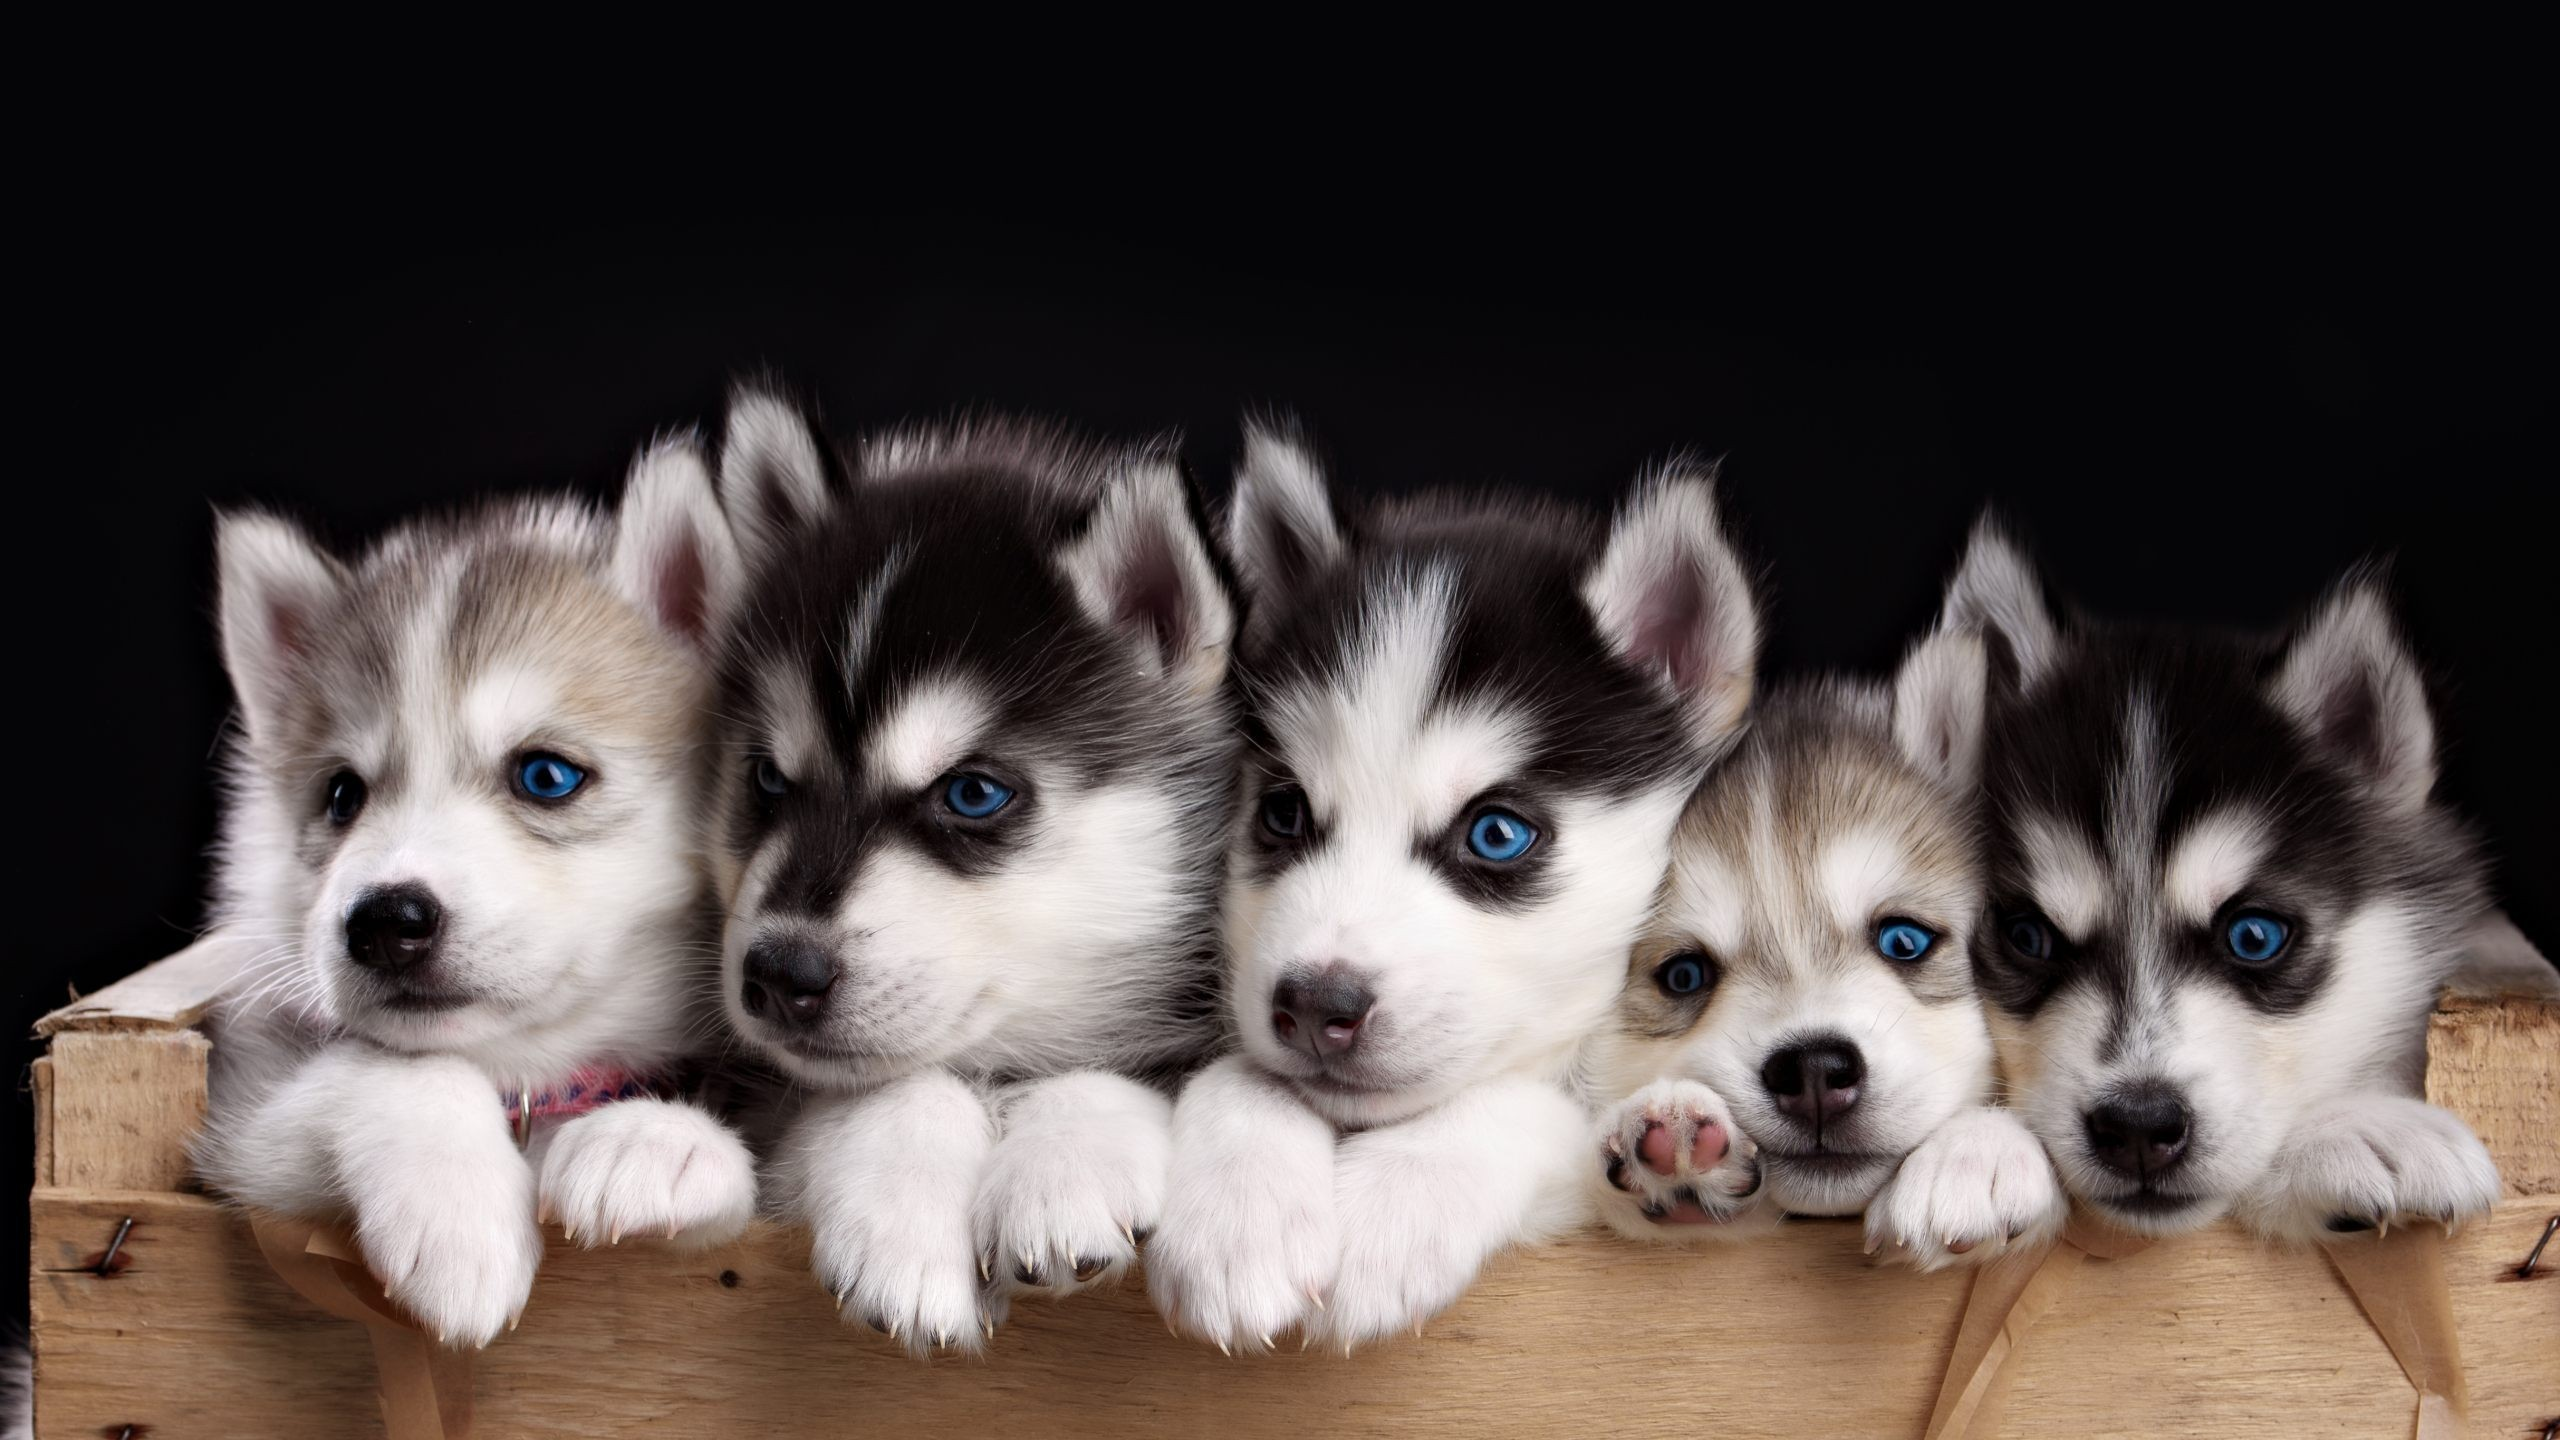 Wallpaper Of Puppies For Windows Snow